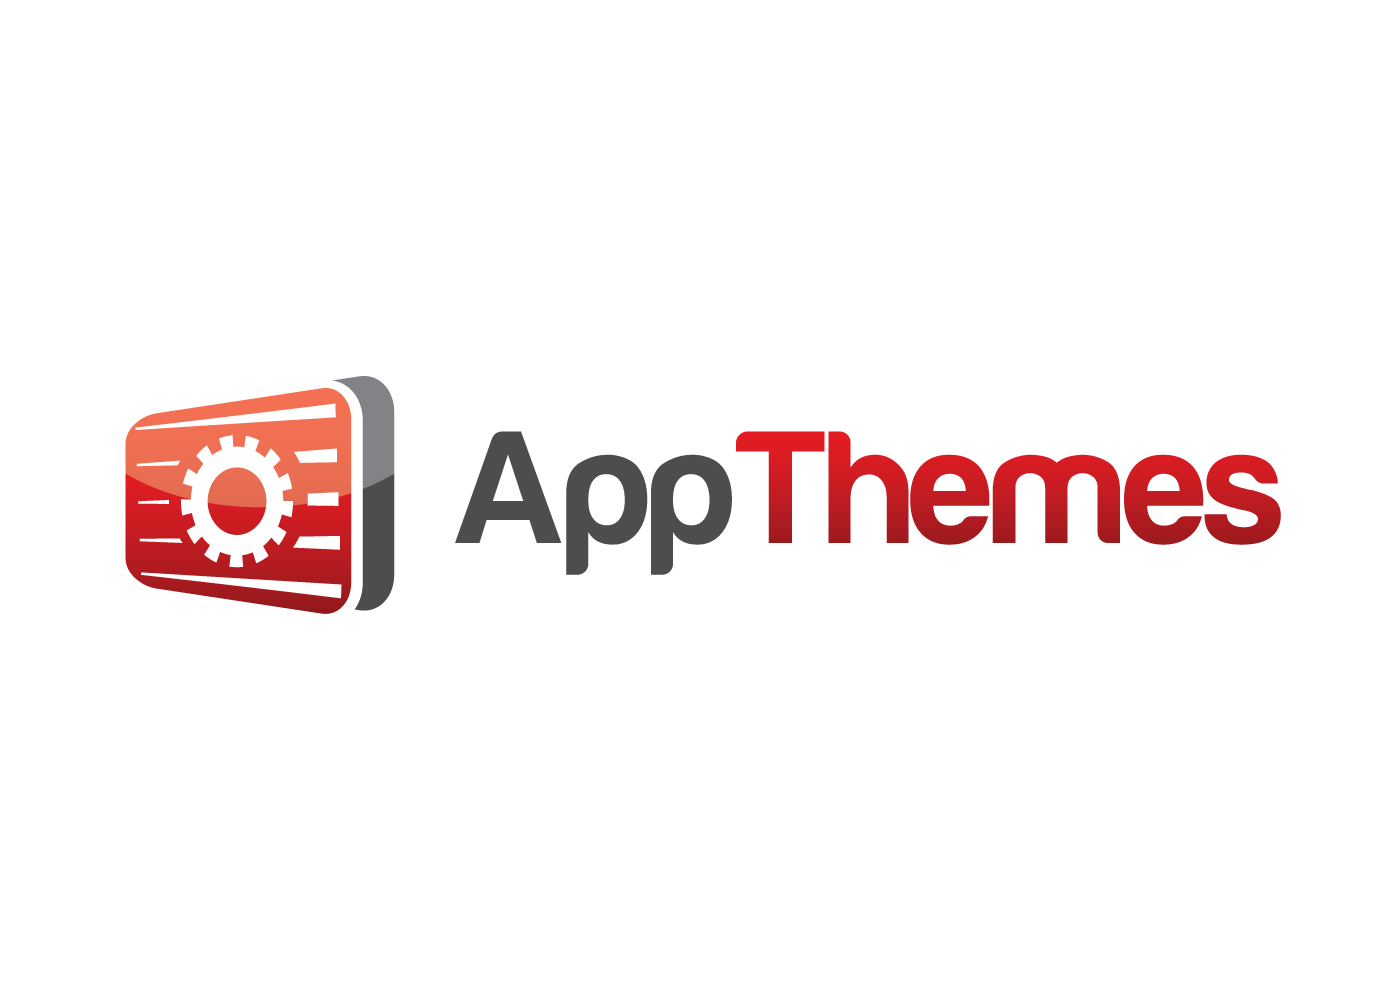 AppThemes Coupon Code 2014 – Save 15% On All AppThemes Products